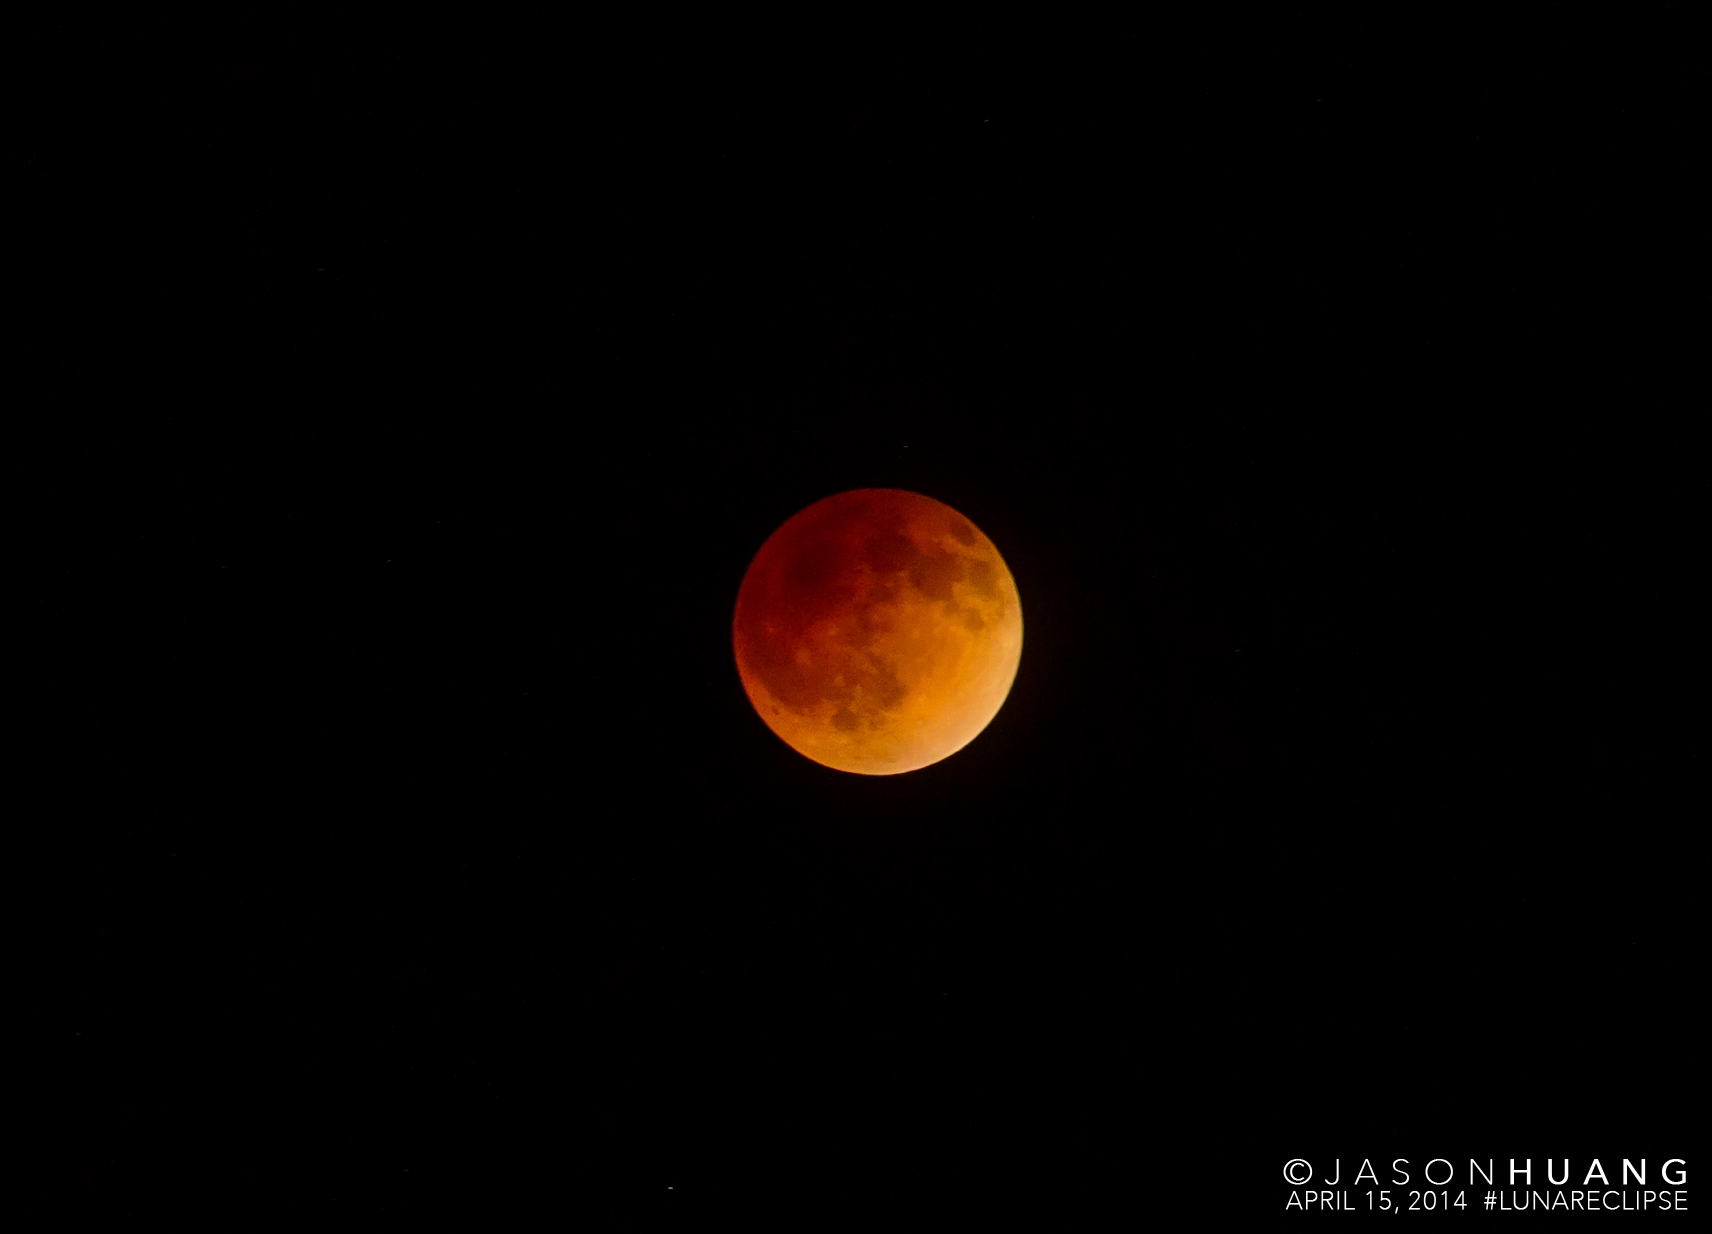 Blood Moon Lunar Eclipse over Orange County, CA on April 15, 2014.